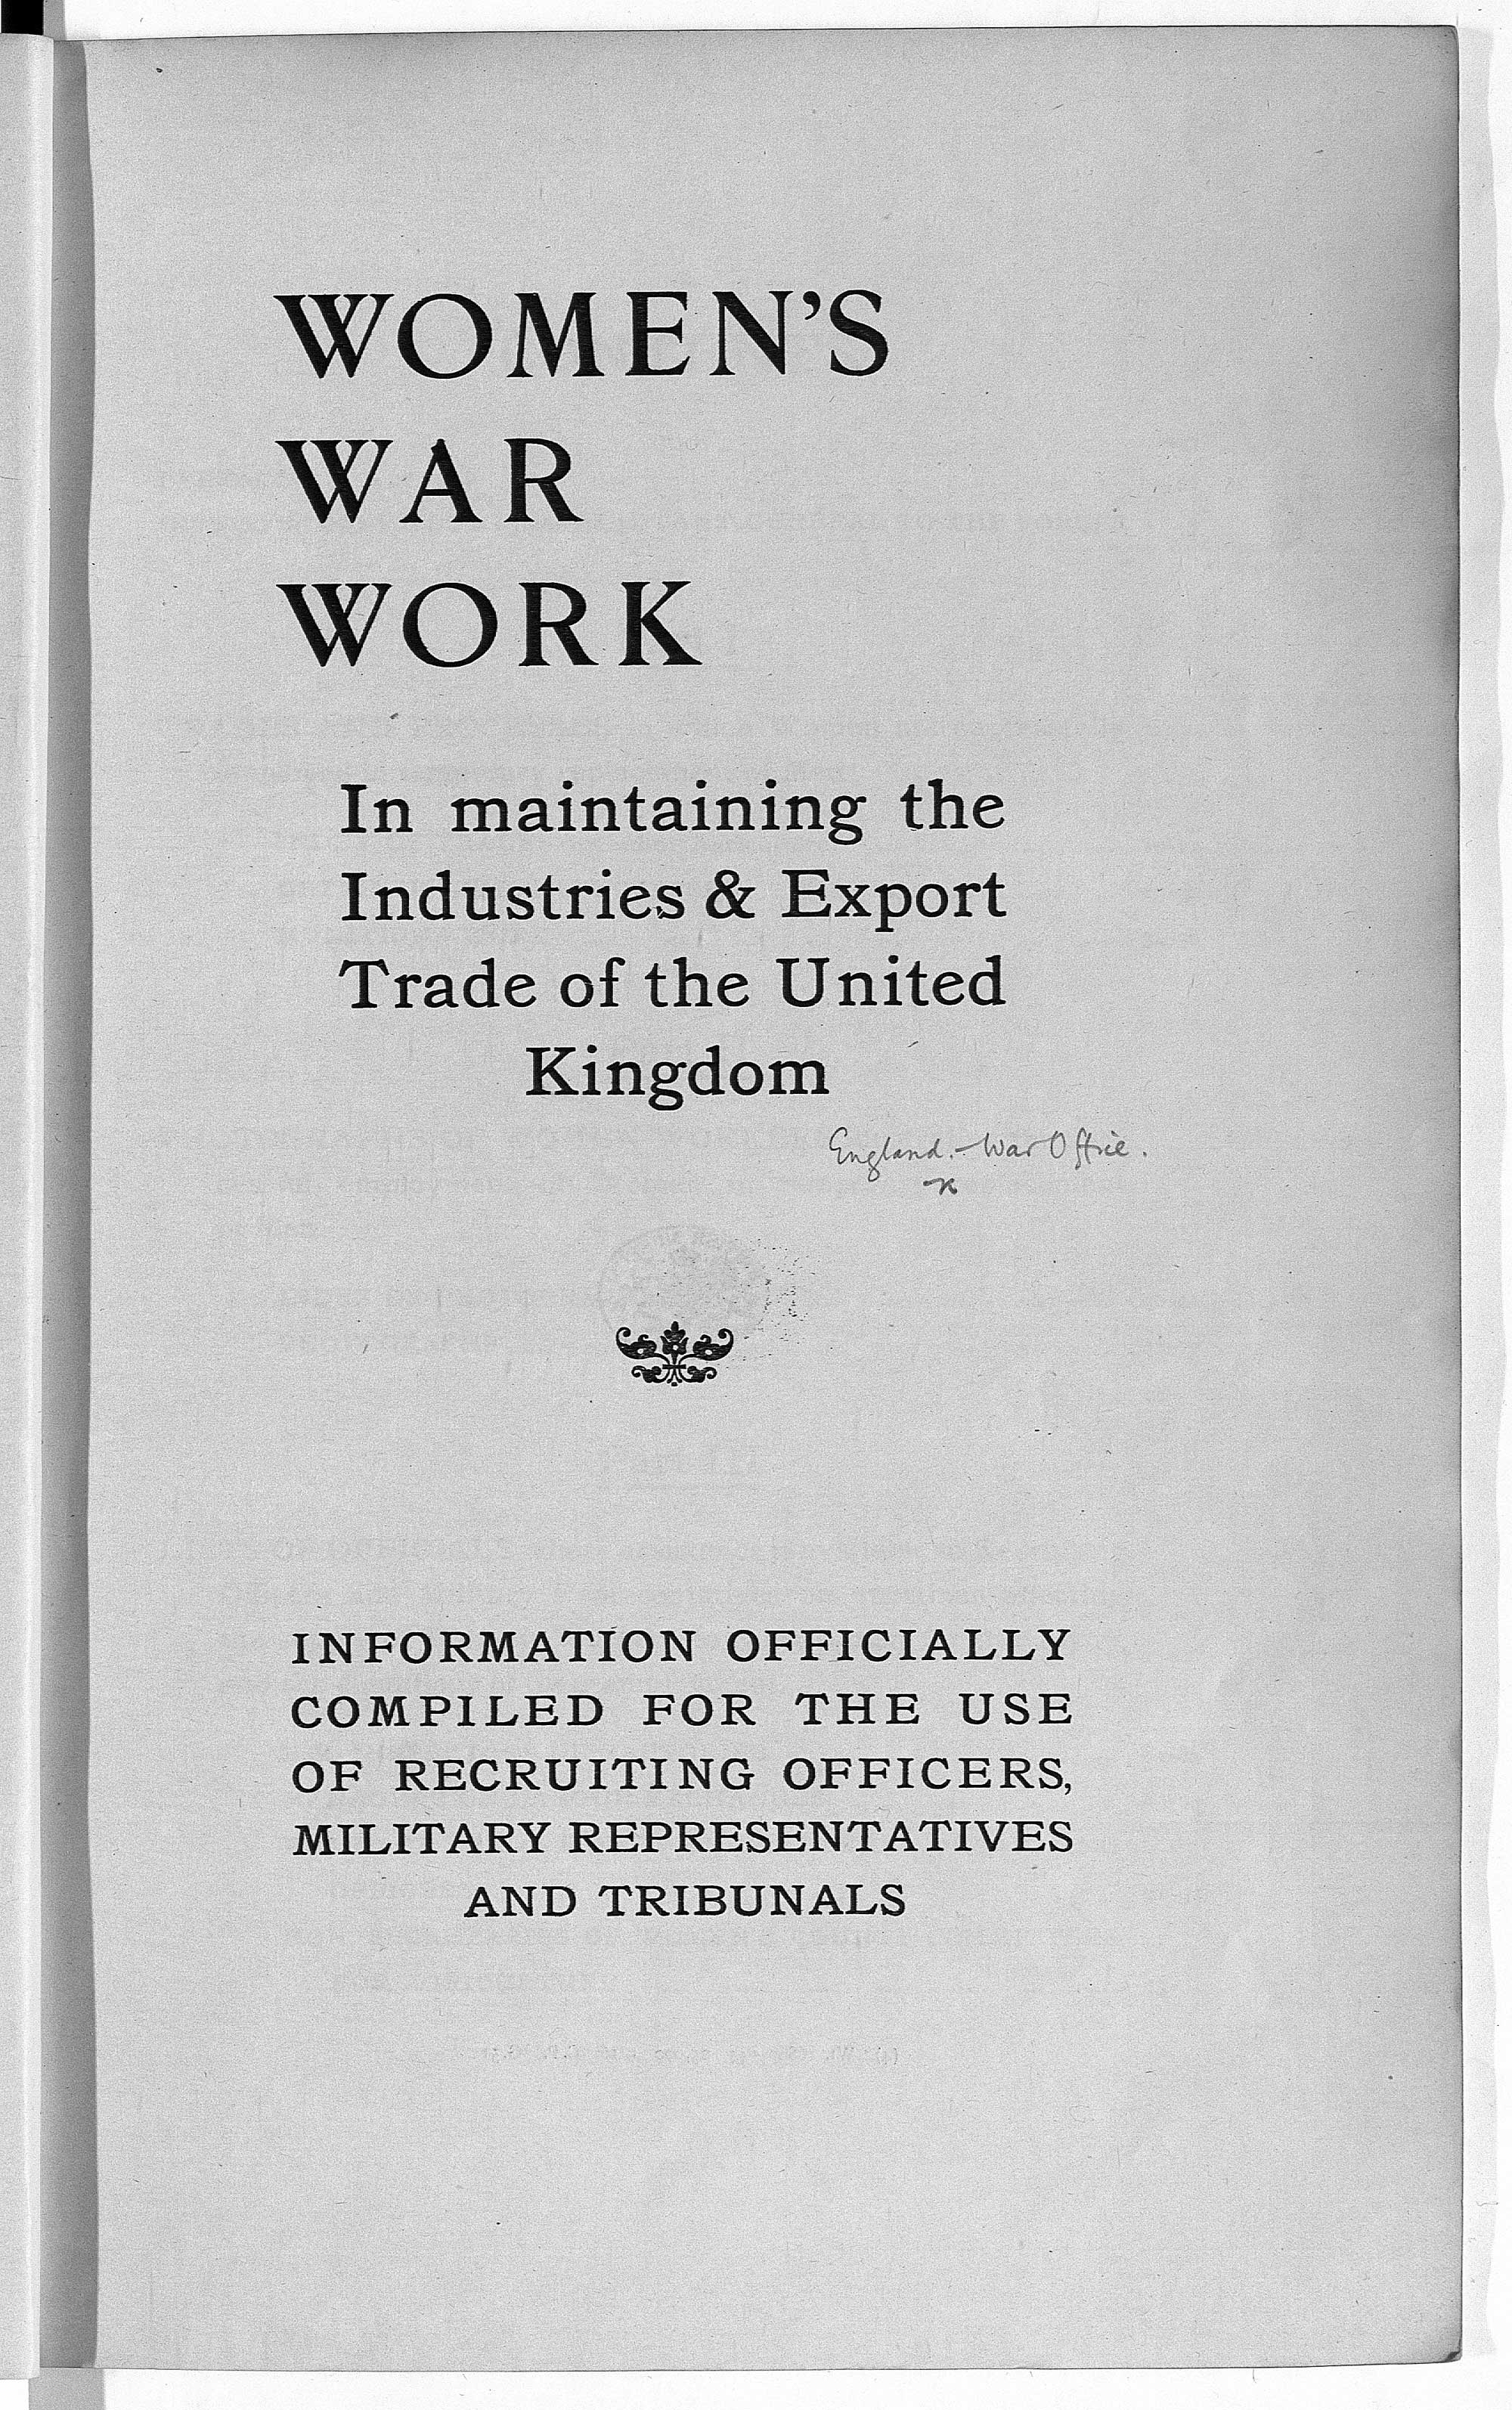 25bc6fc15ff6f Women s War Work  a publication providing an authoritative list of the  trades and processes in